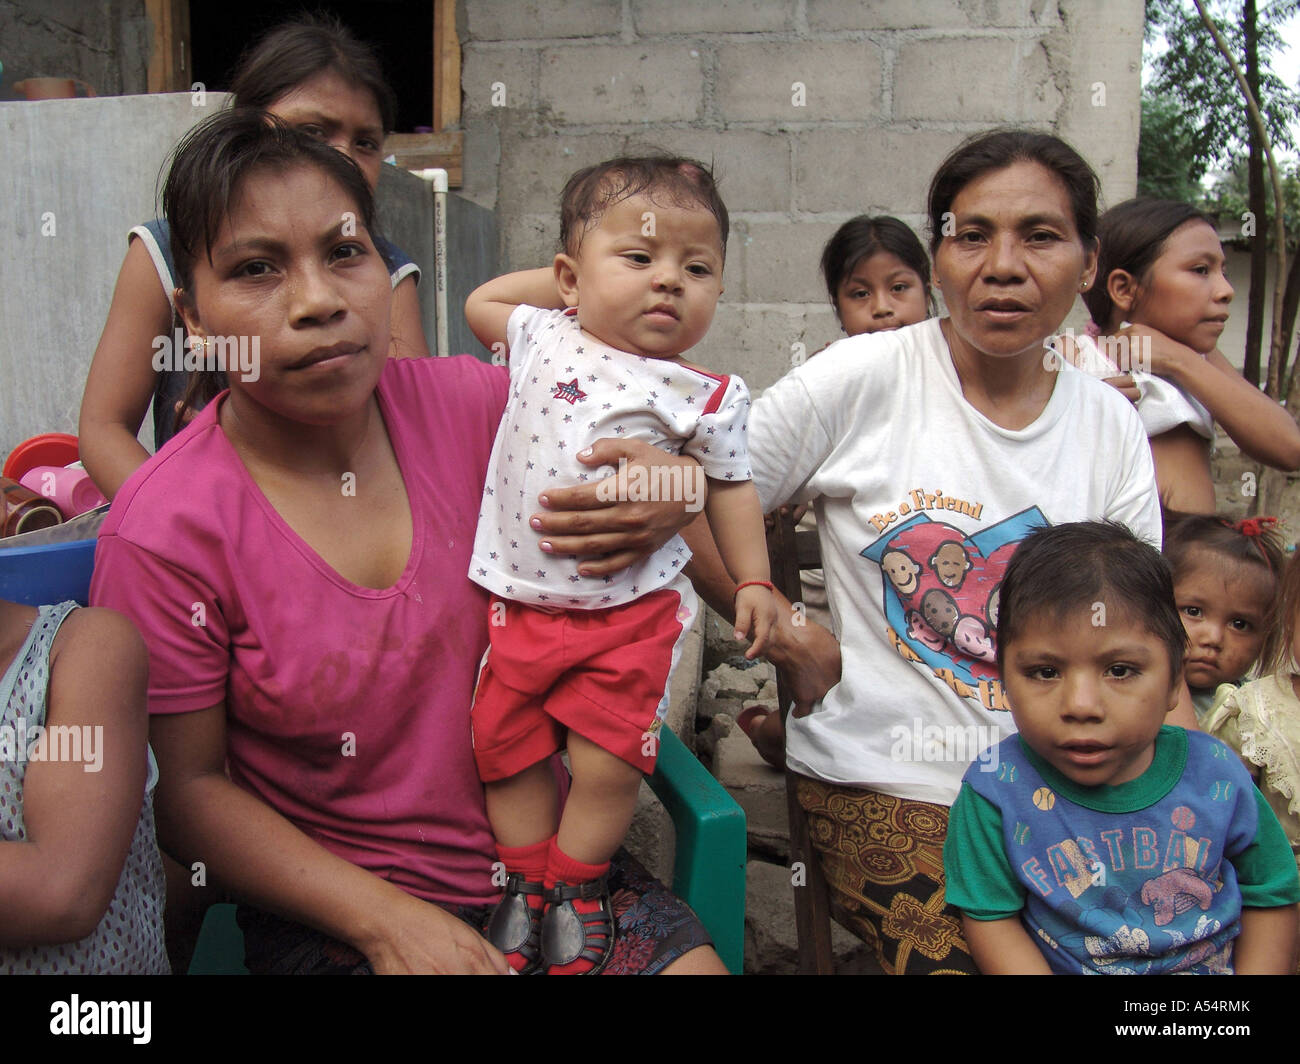 Painet ip1893 honduras single mothers children san pedro sula country developing nation less economically developed - Stock Image